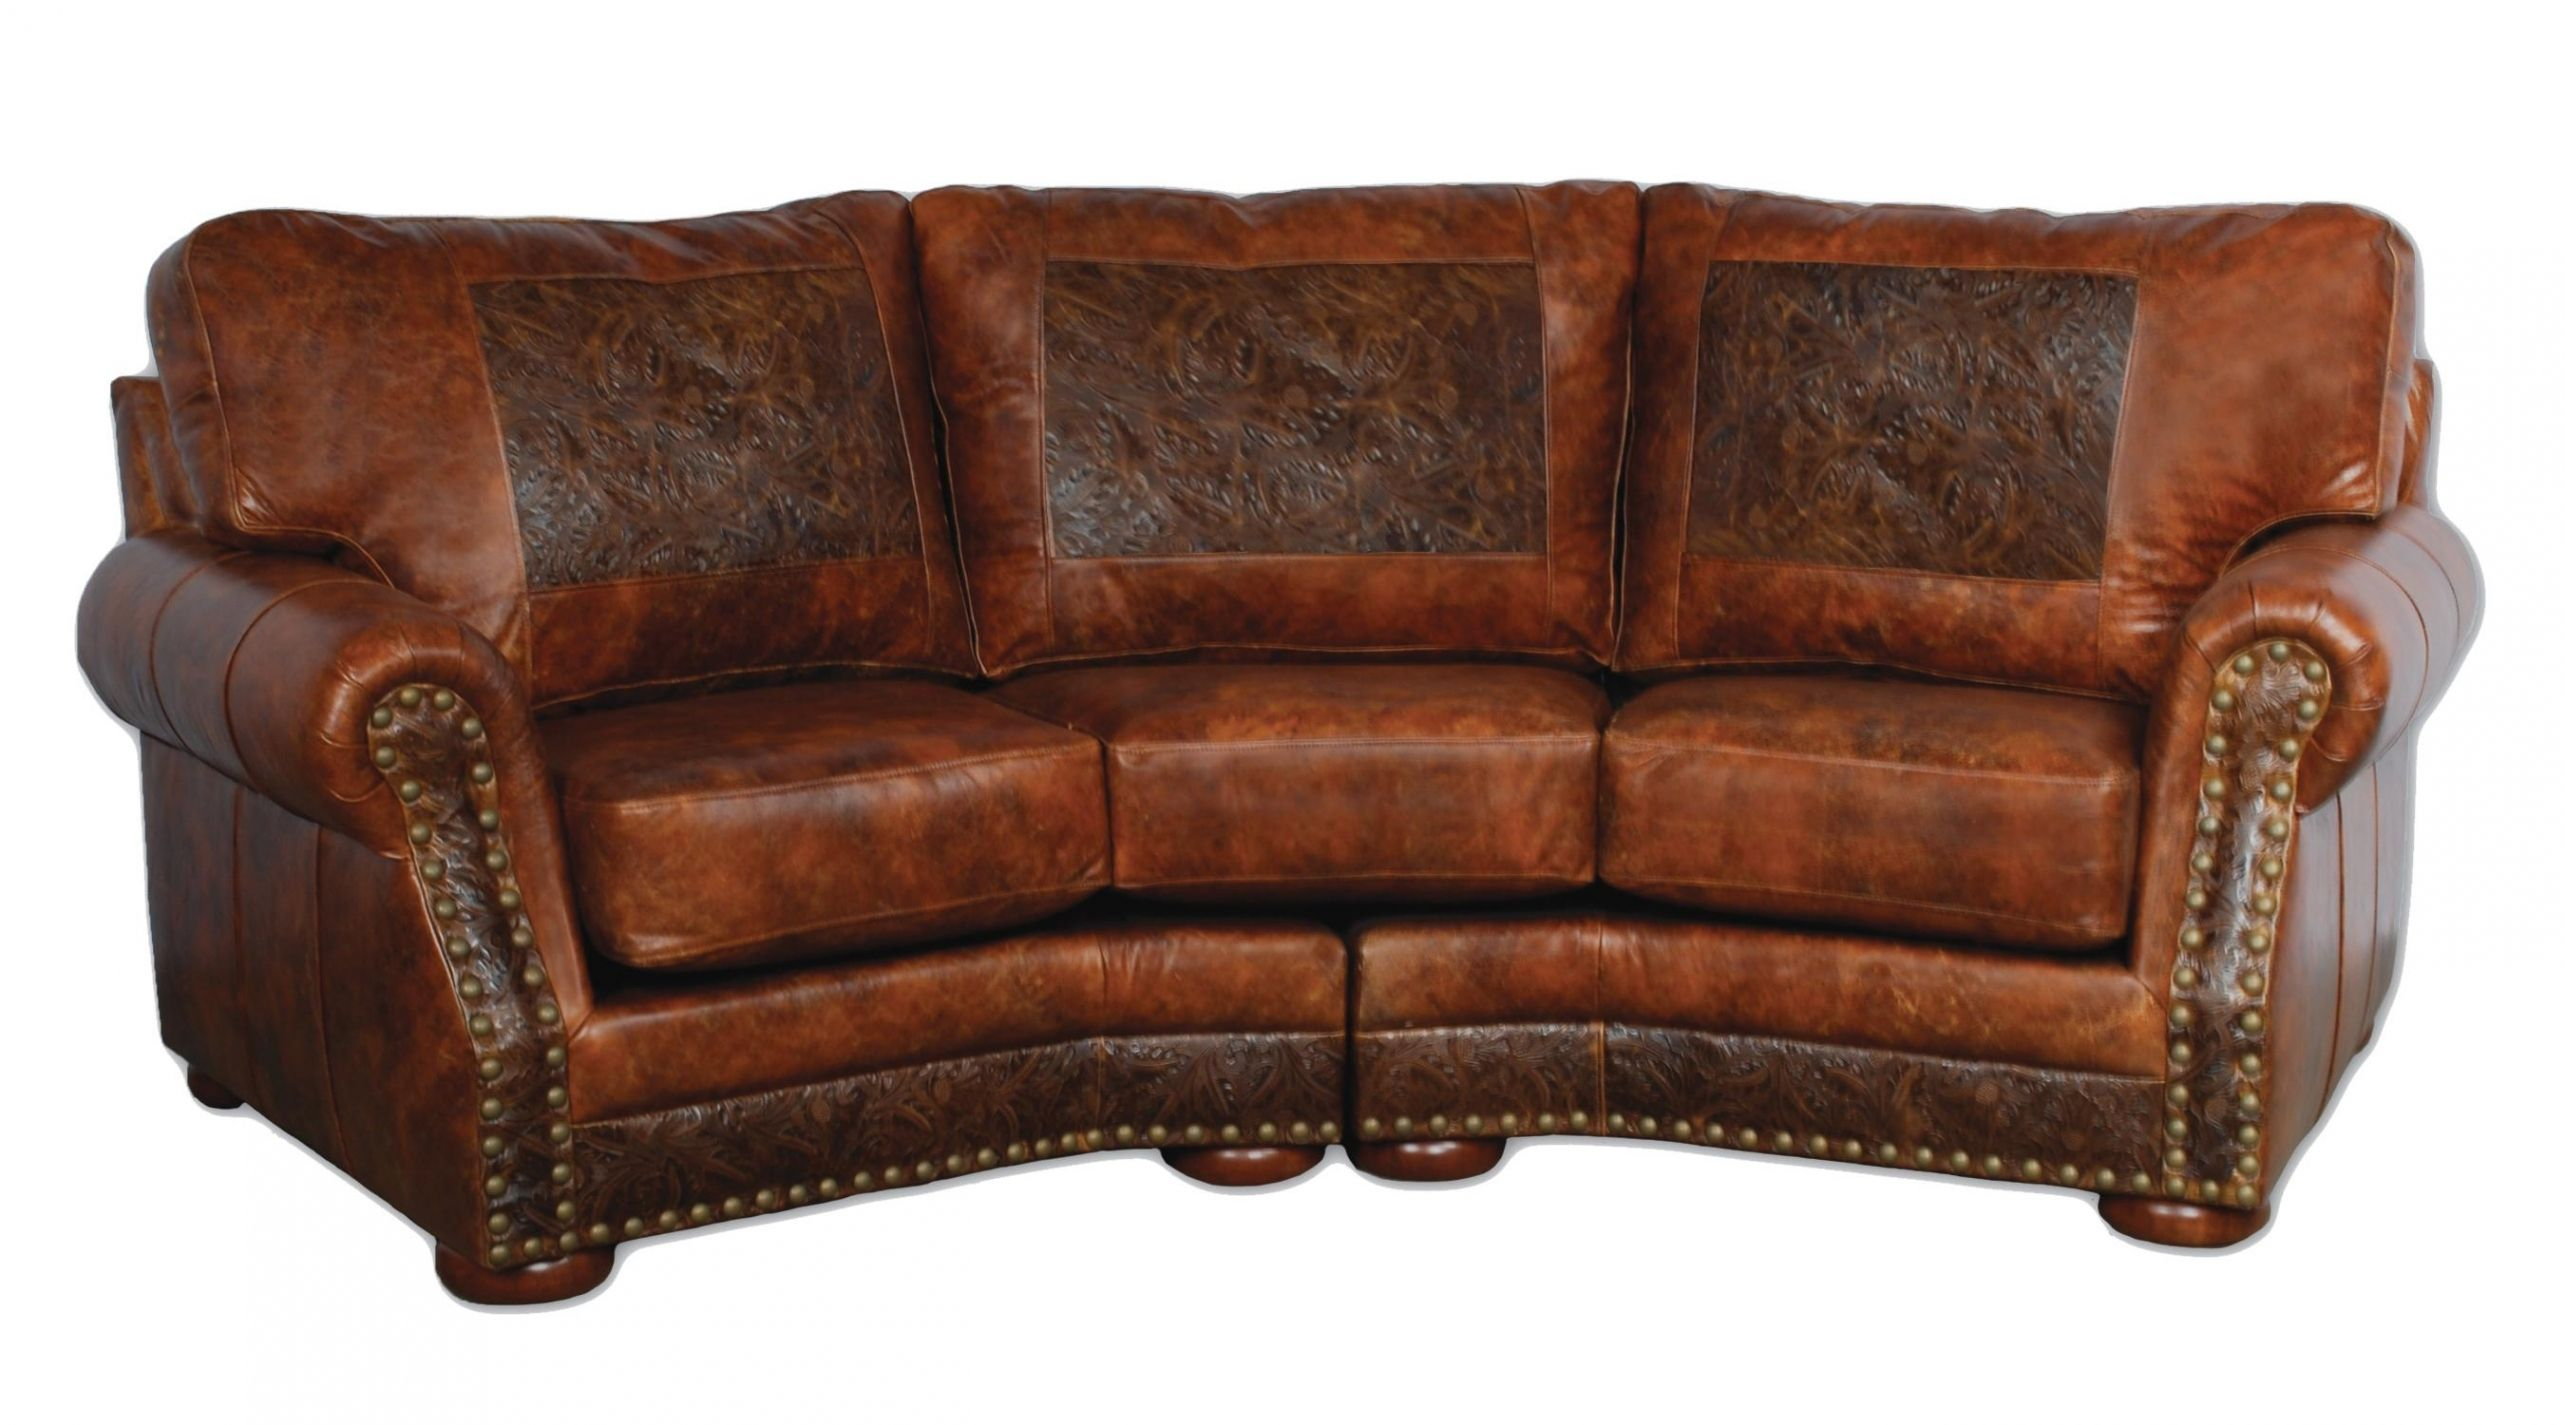 Furniture Homey Design Rustic Leather Sofas Uk Tan